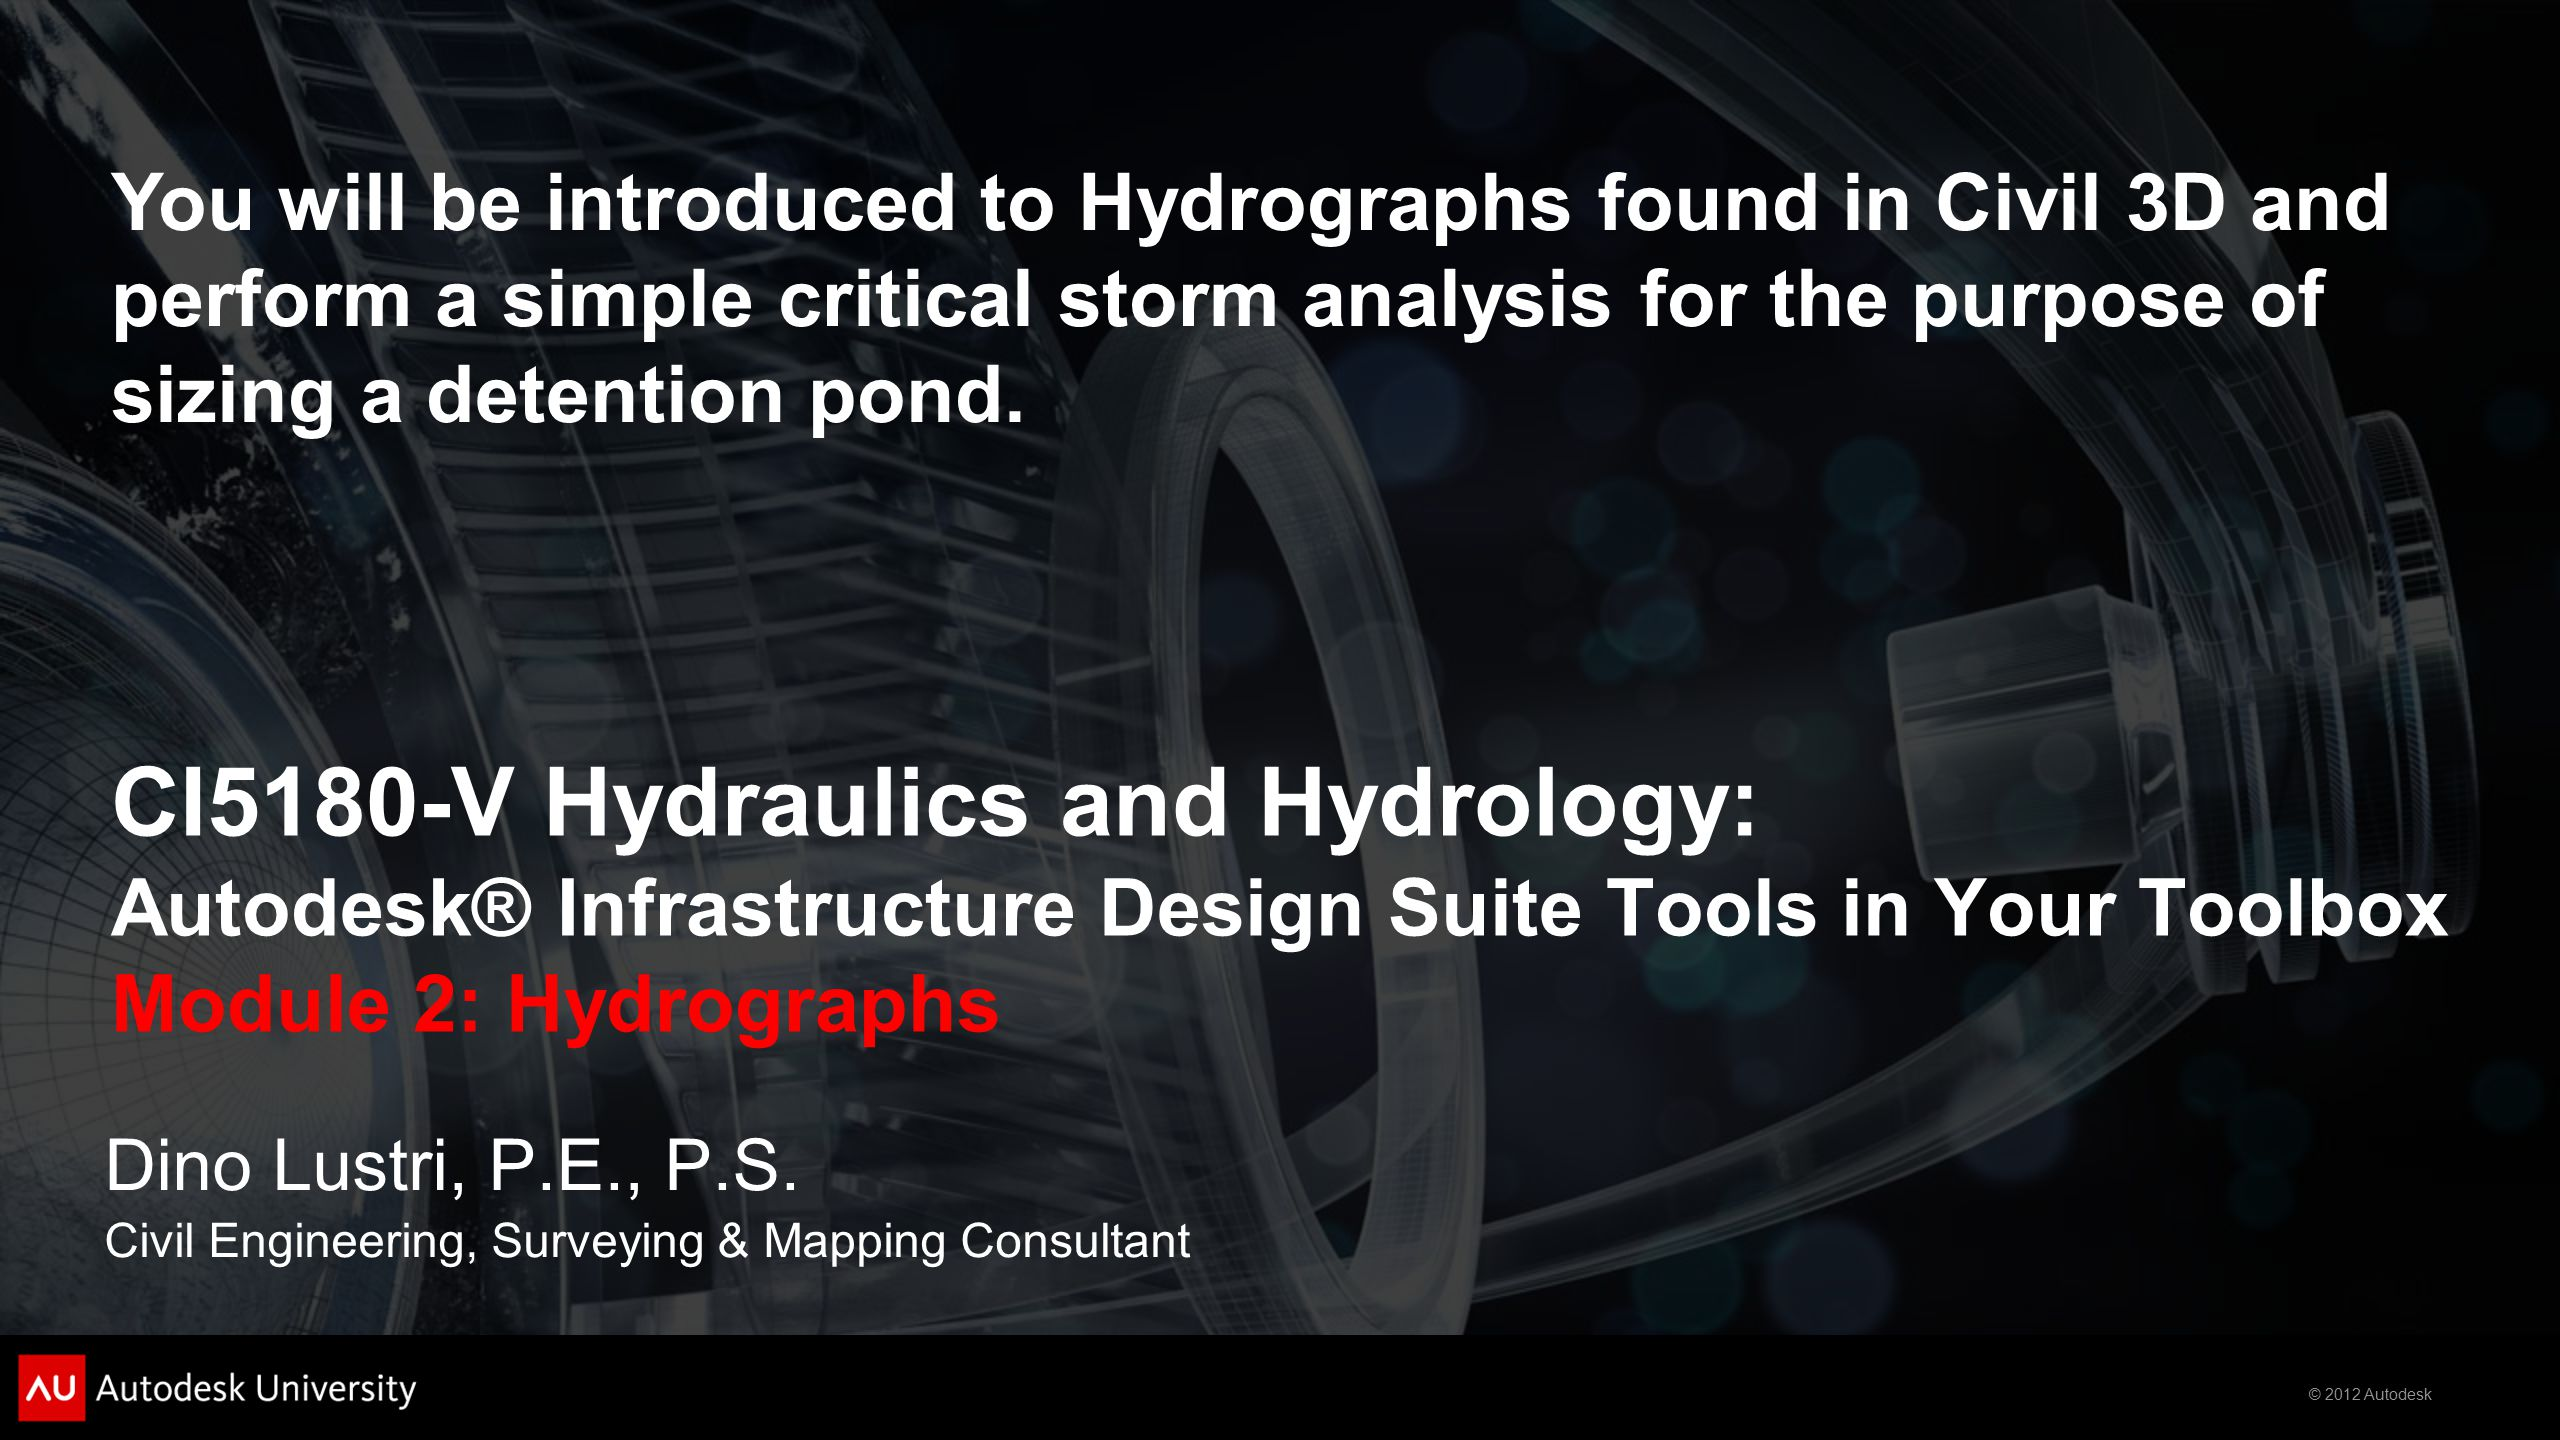 © 2012 Autodesk CI5180-V Hydraulics and Hydrology: Autodesk® Infrastructure Design Suite Tools in Your Toolbox Module 2: Hydrographs Dino Lustri, P.E., P.S.